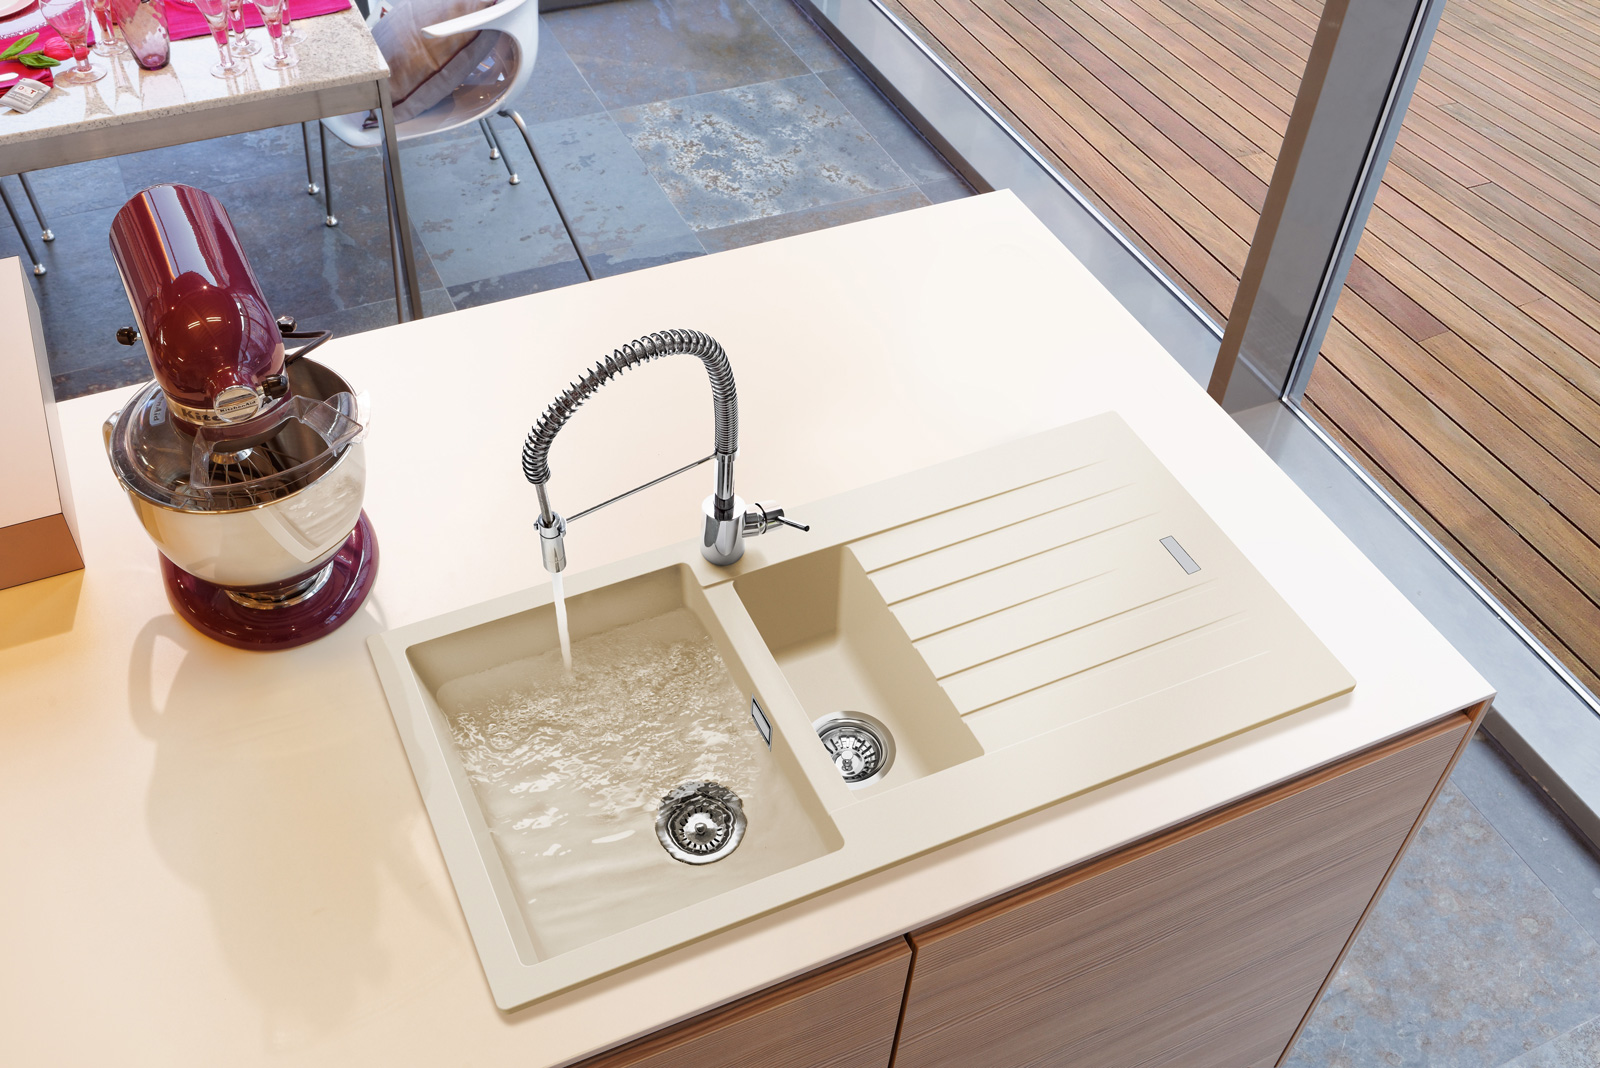 Sinks PERFECTO 1000.1 Sahara